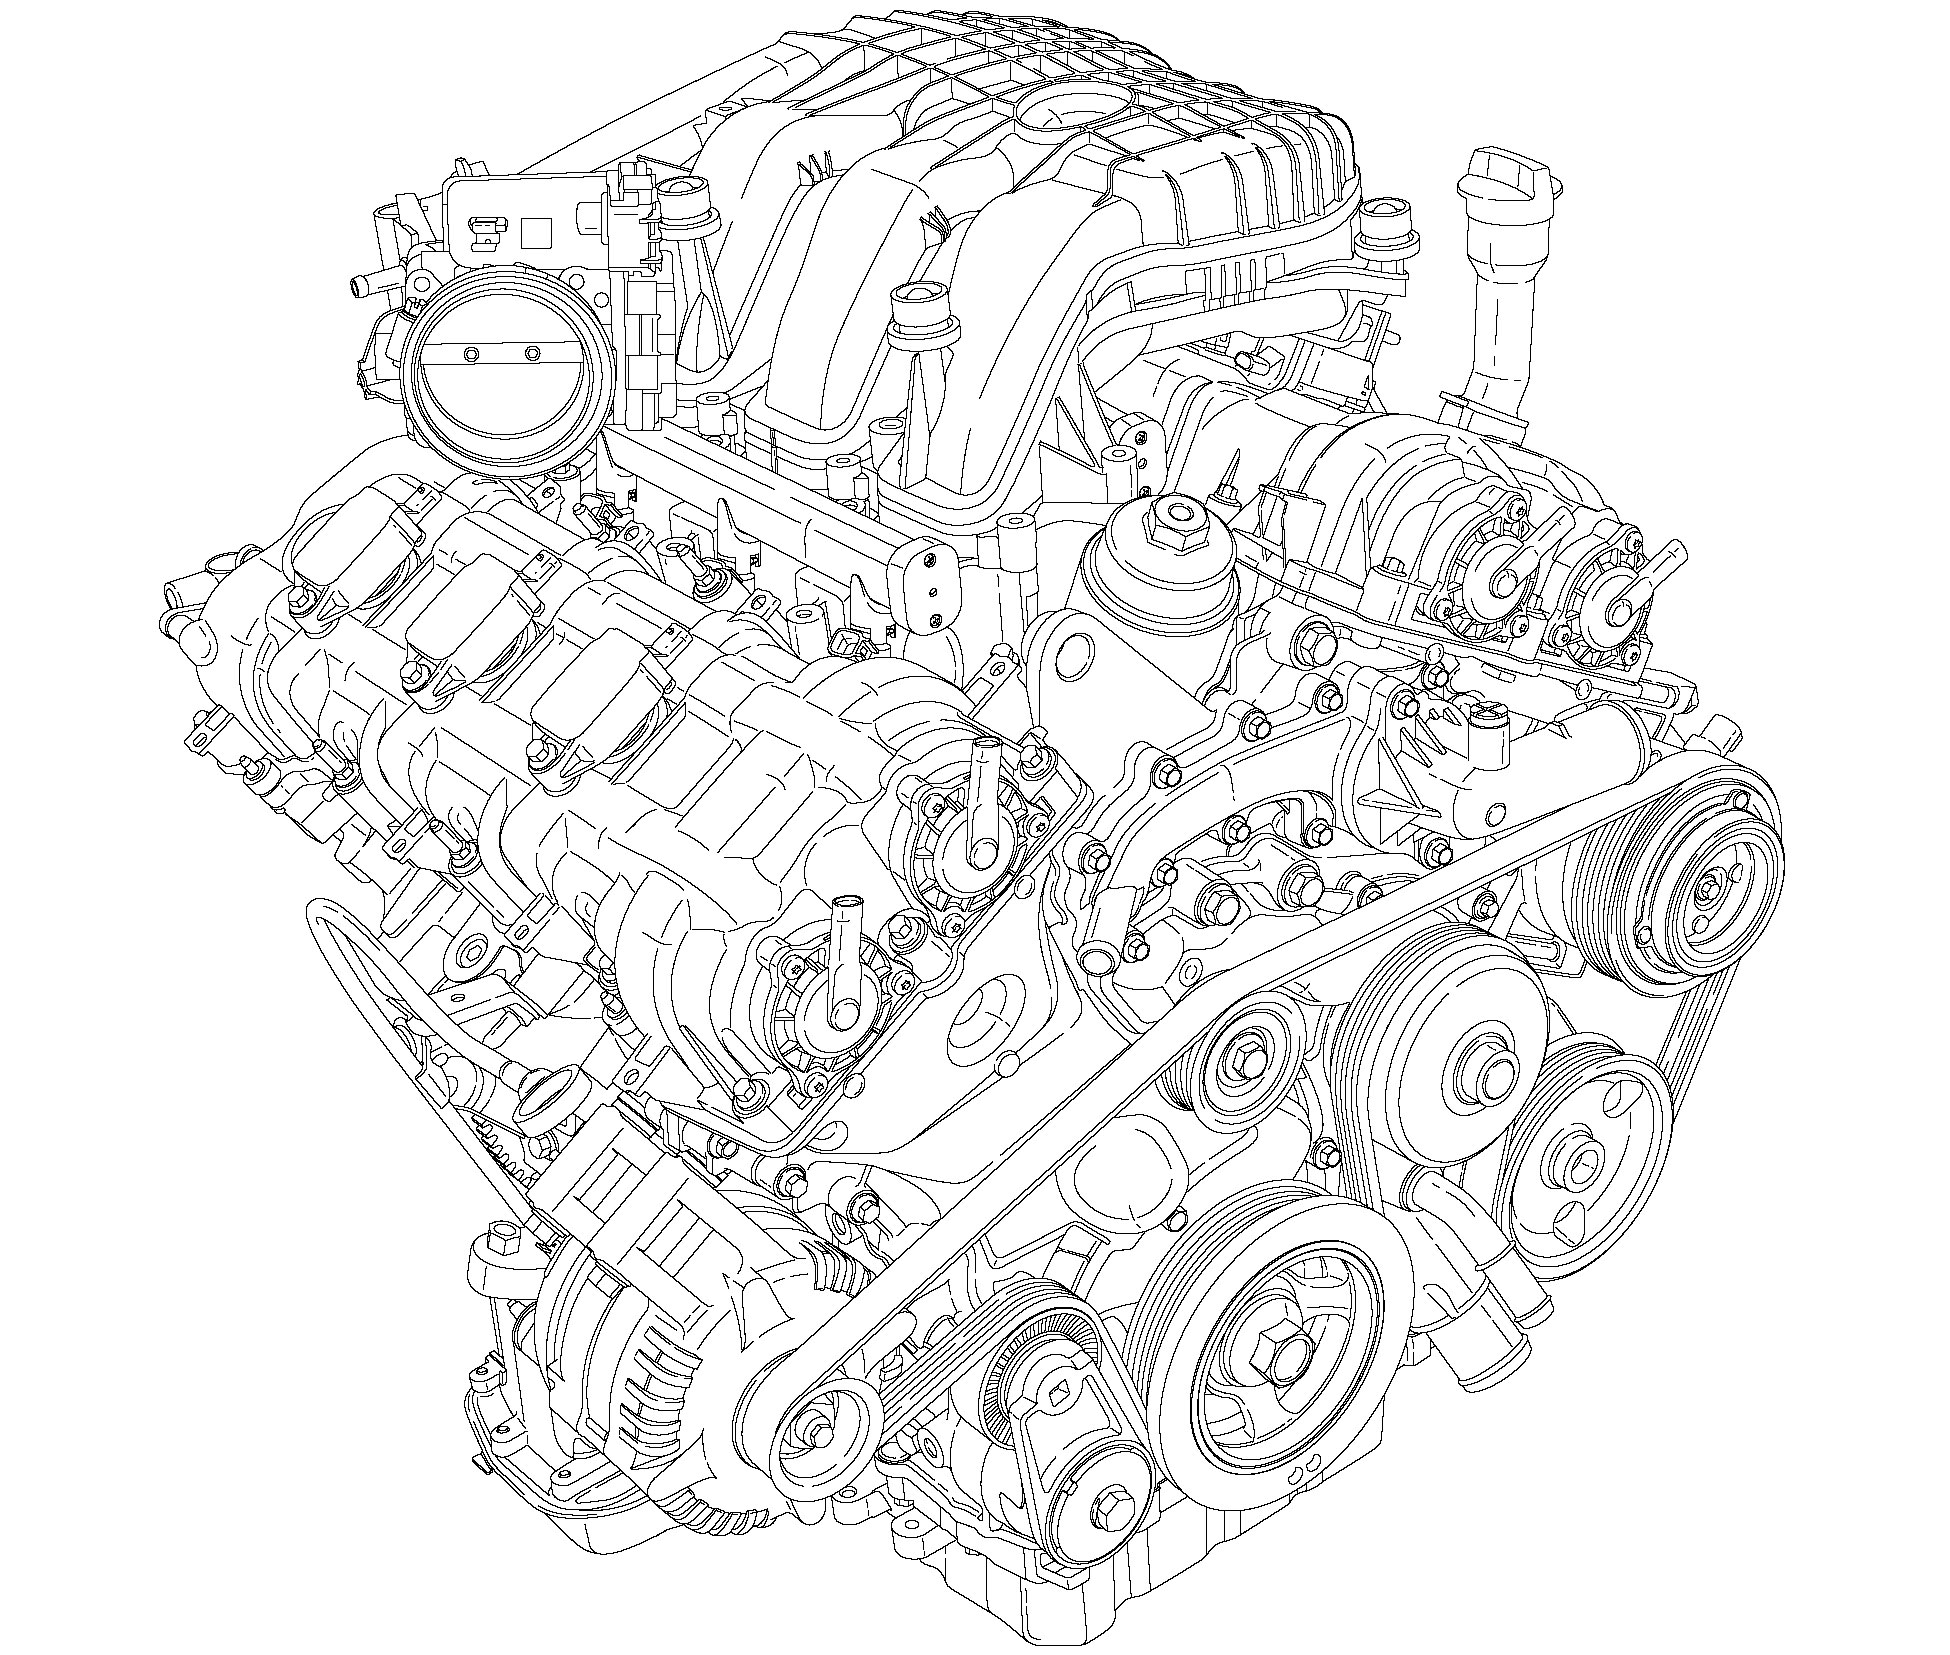 Pentastar engine Illustration